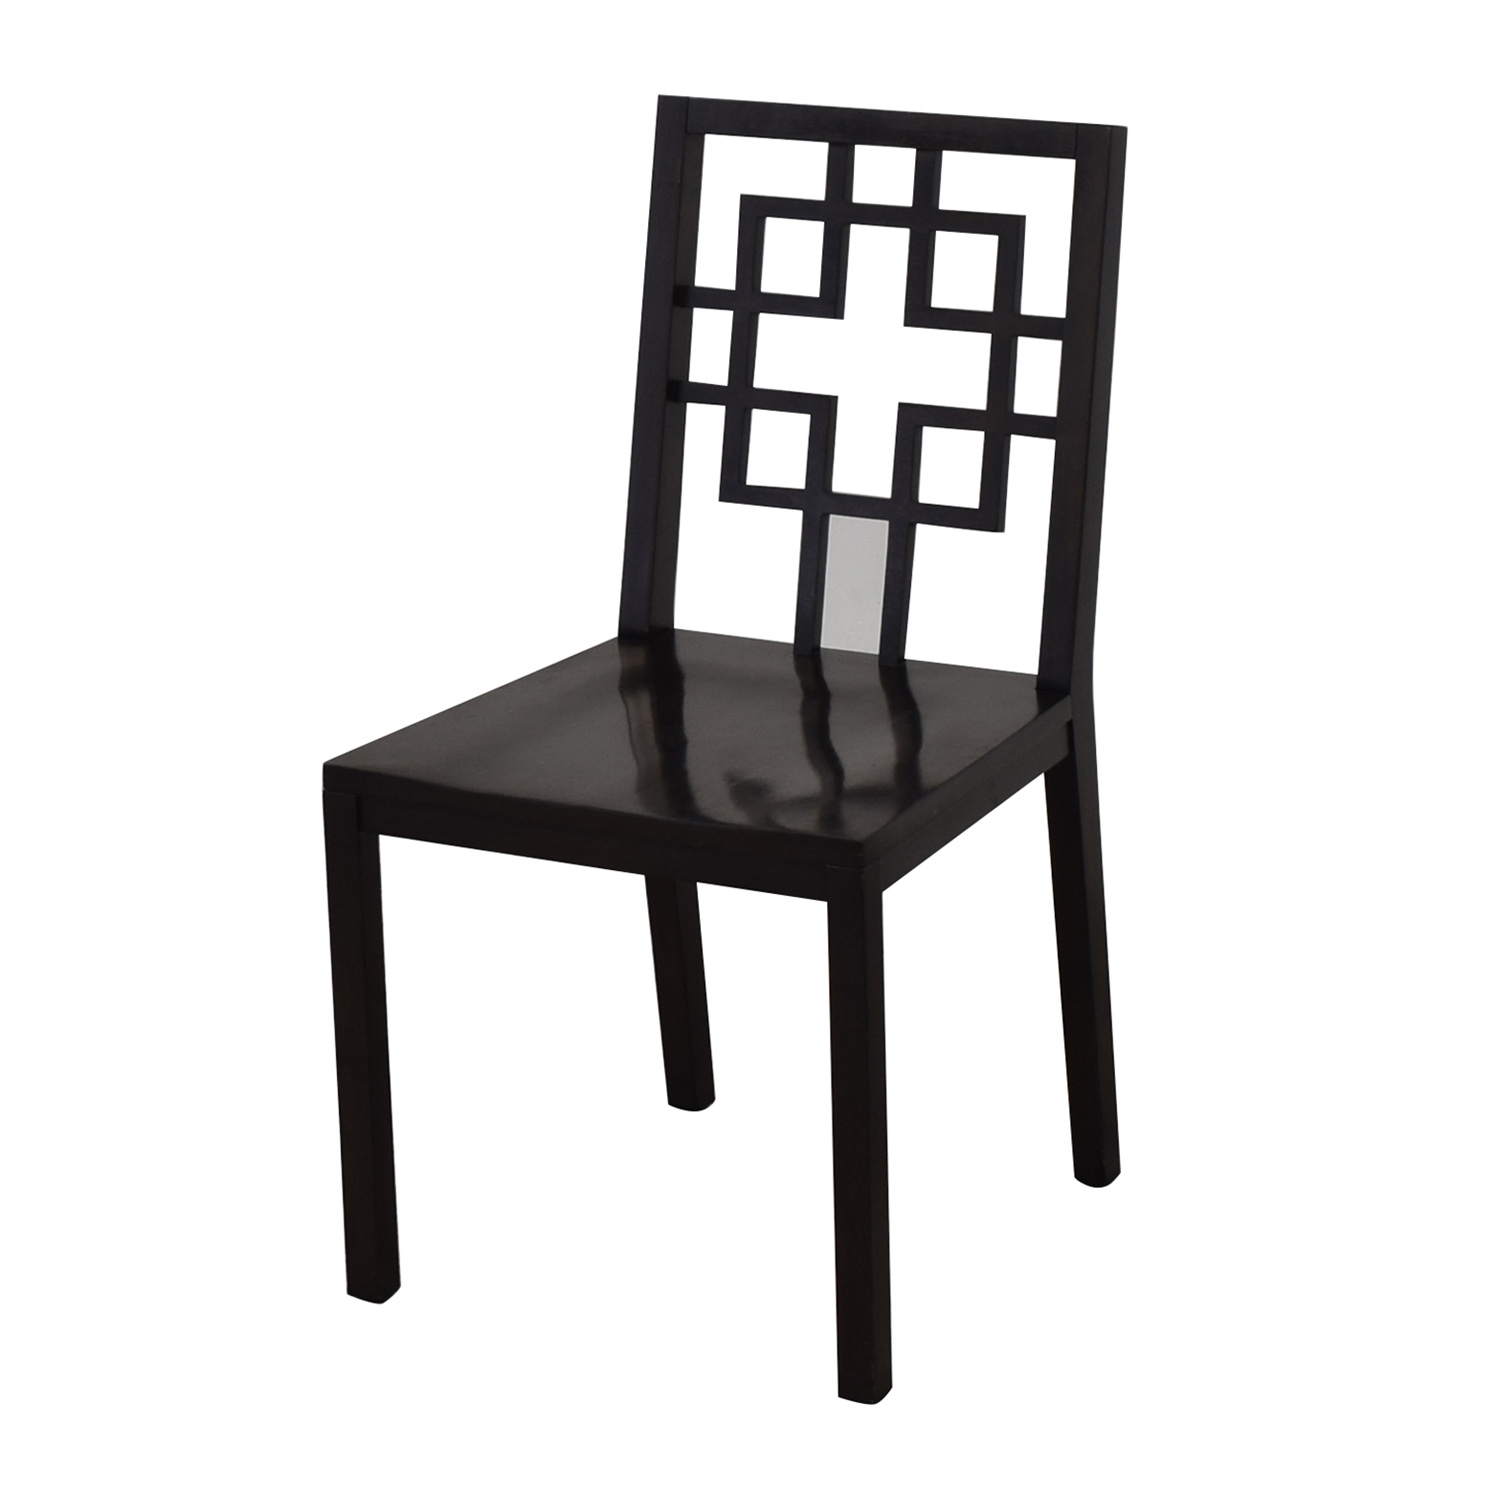 West Elm Overlapping Squares Chairs / Chairs